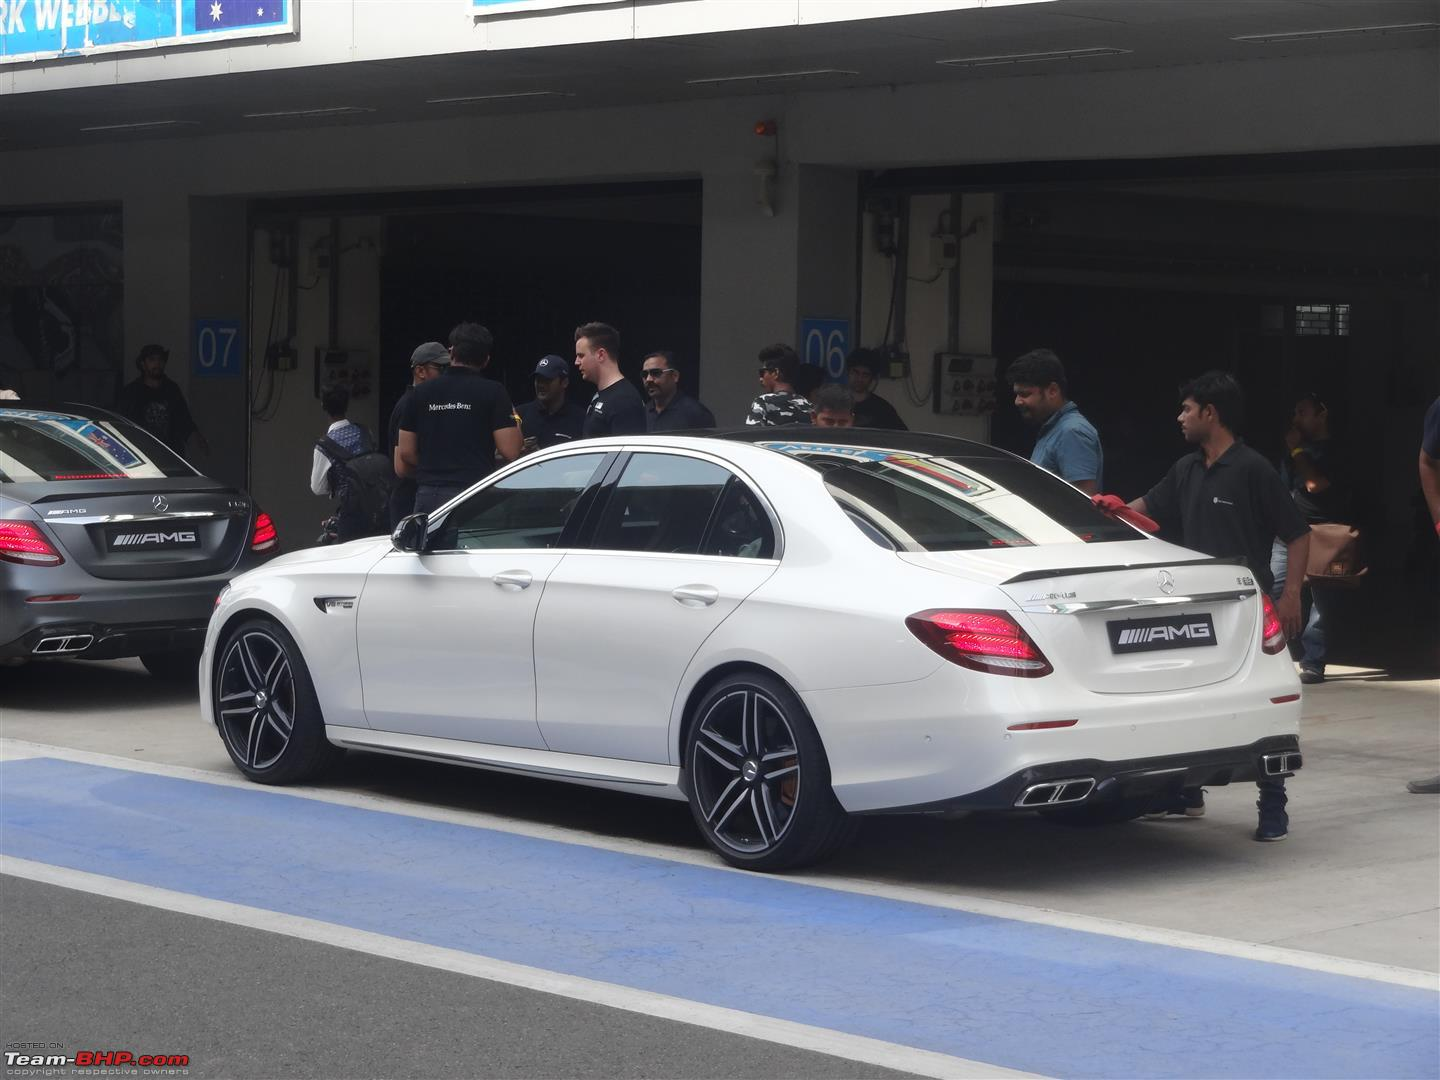 2018 Mercedes Amg E63 S Launched At Rs 1 5 Crore Dsc00943 Large